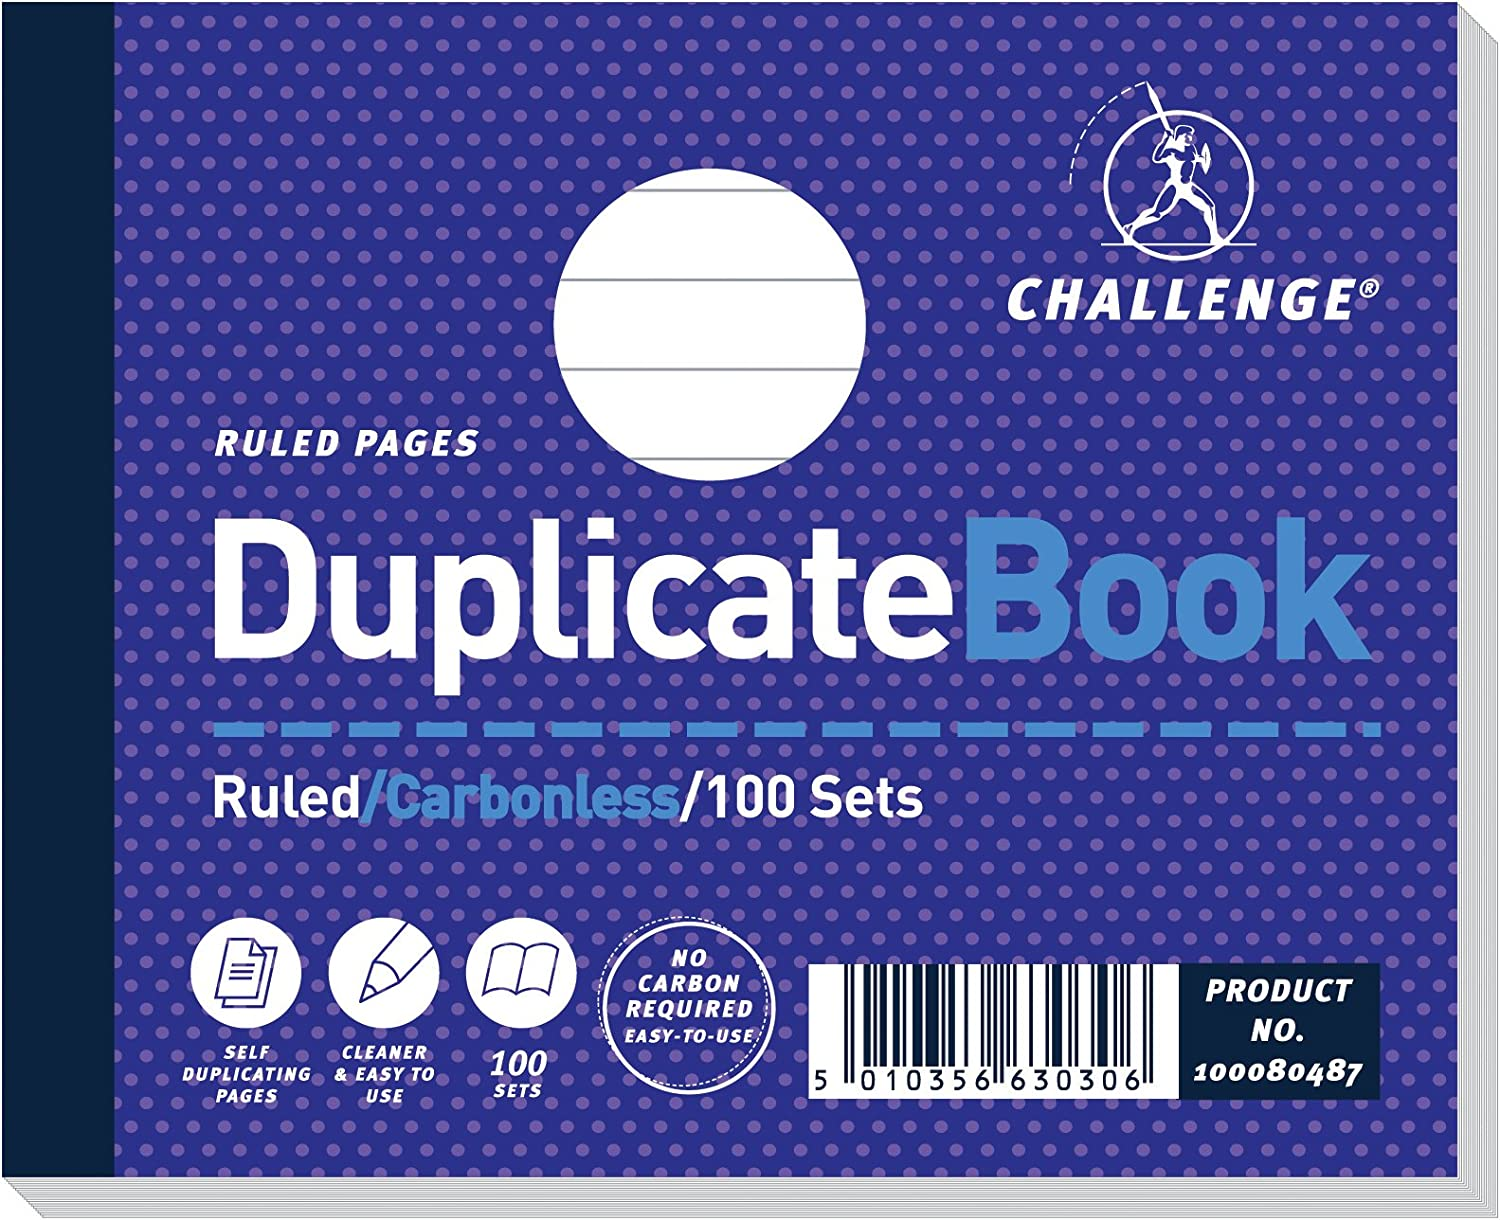 Challenge Duplicate Book Carbonless Ruled 100 Sets 105x130mm Ref 100080487 Pack